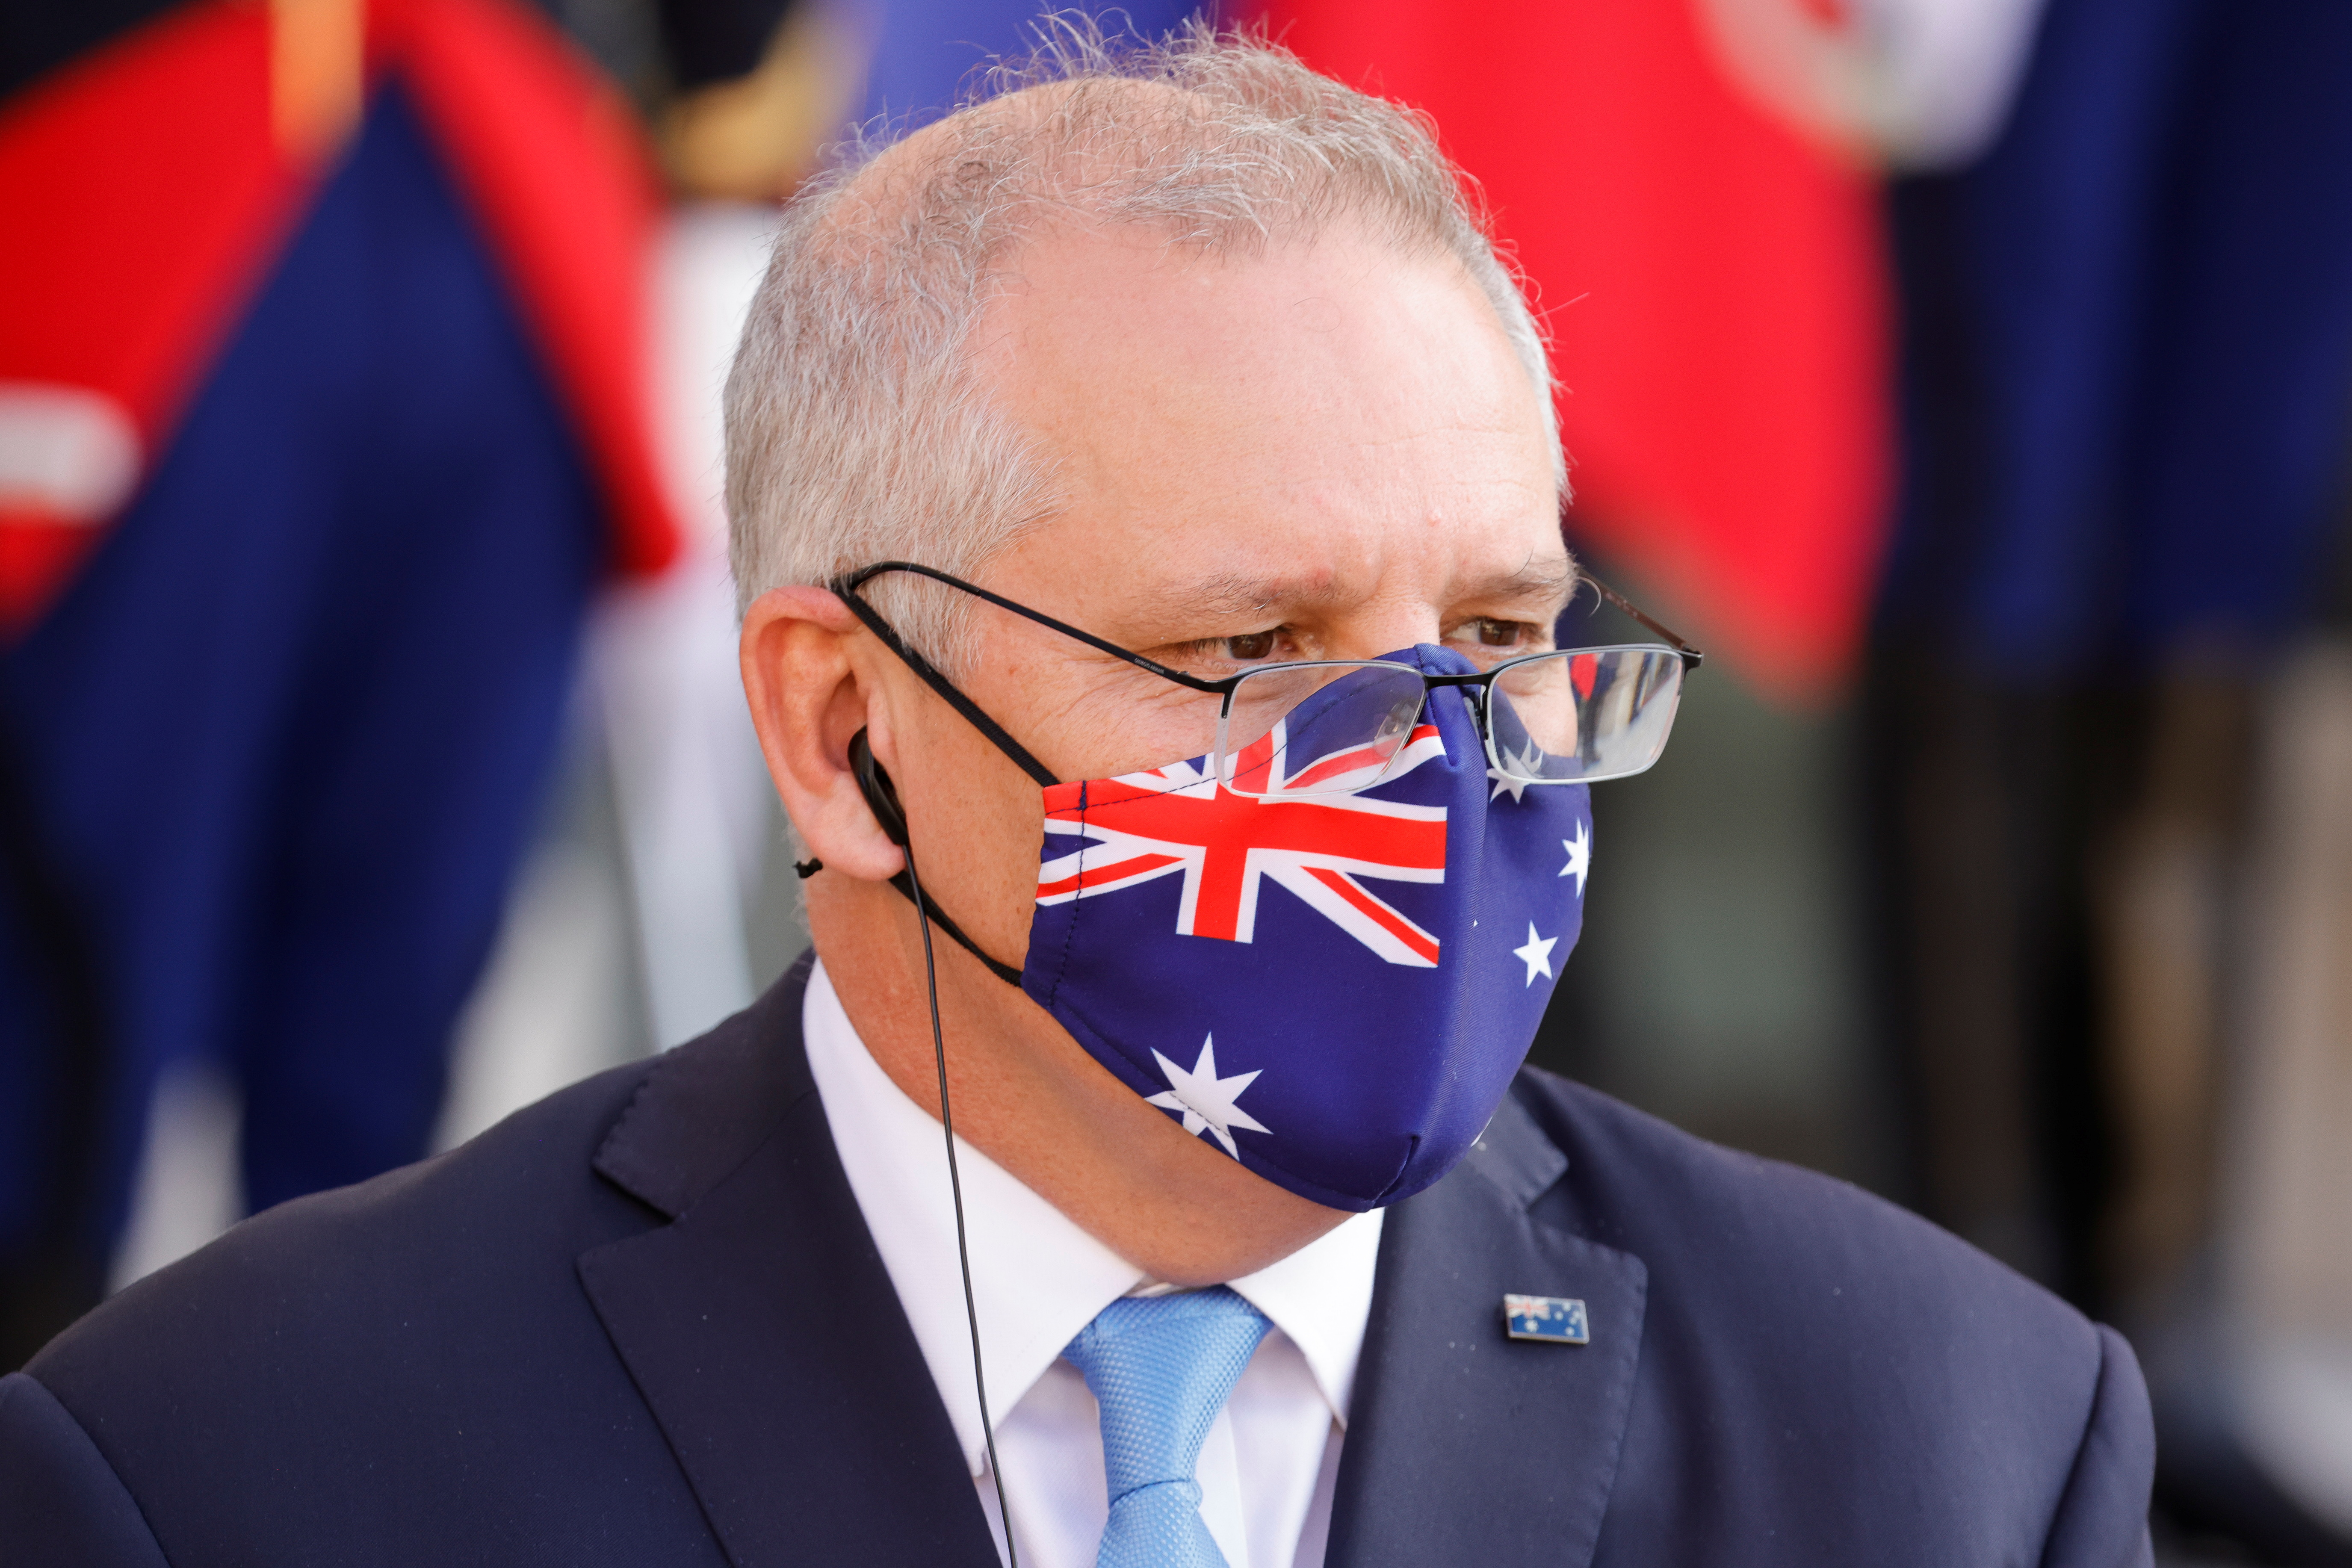 Australian PM Morrison defends lockdown strategy as daily cases hit record